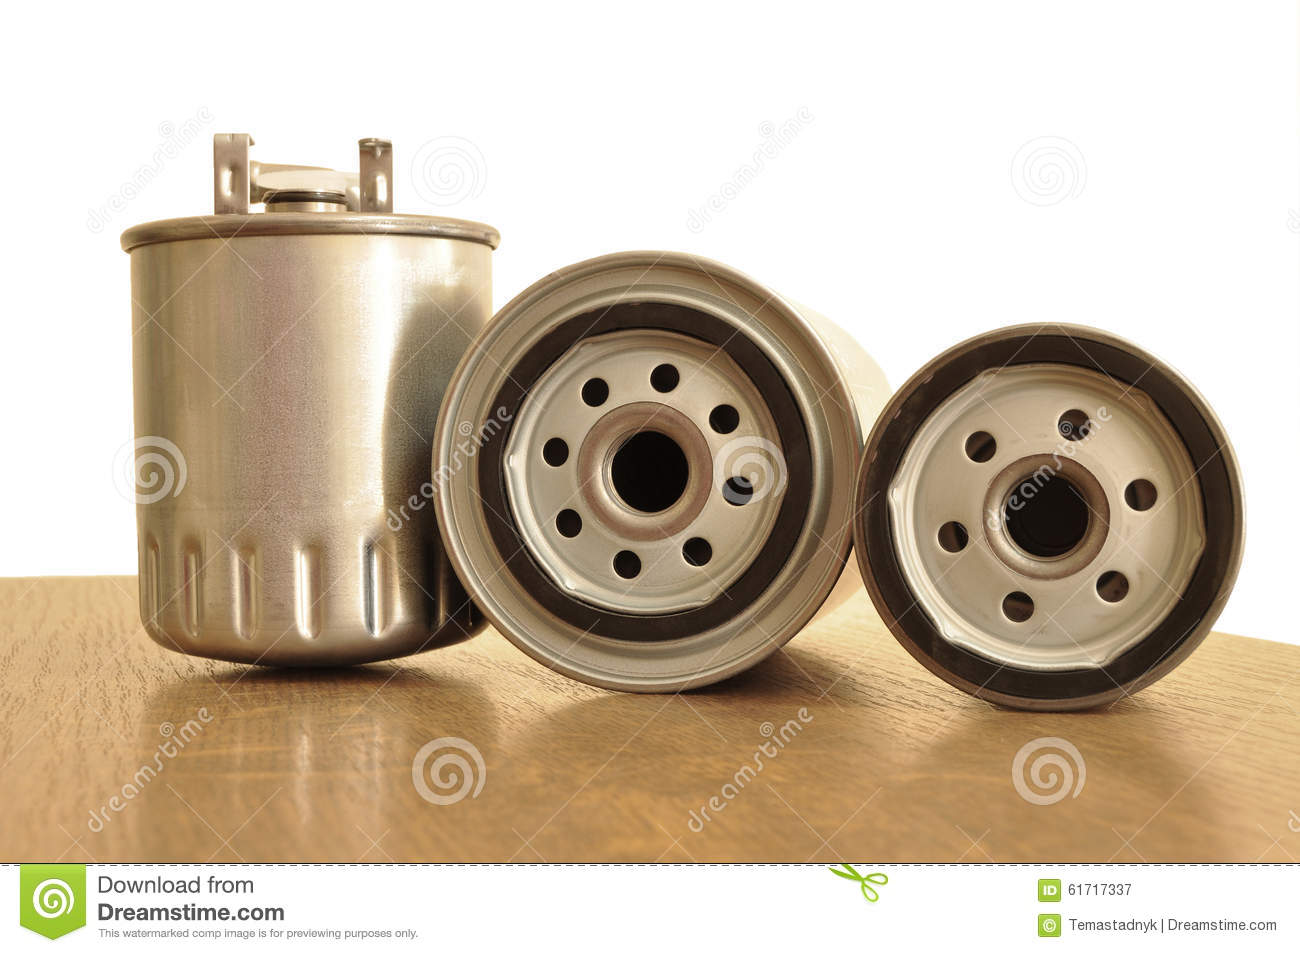 Oil and fuel filter